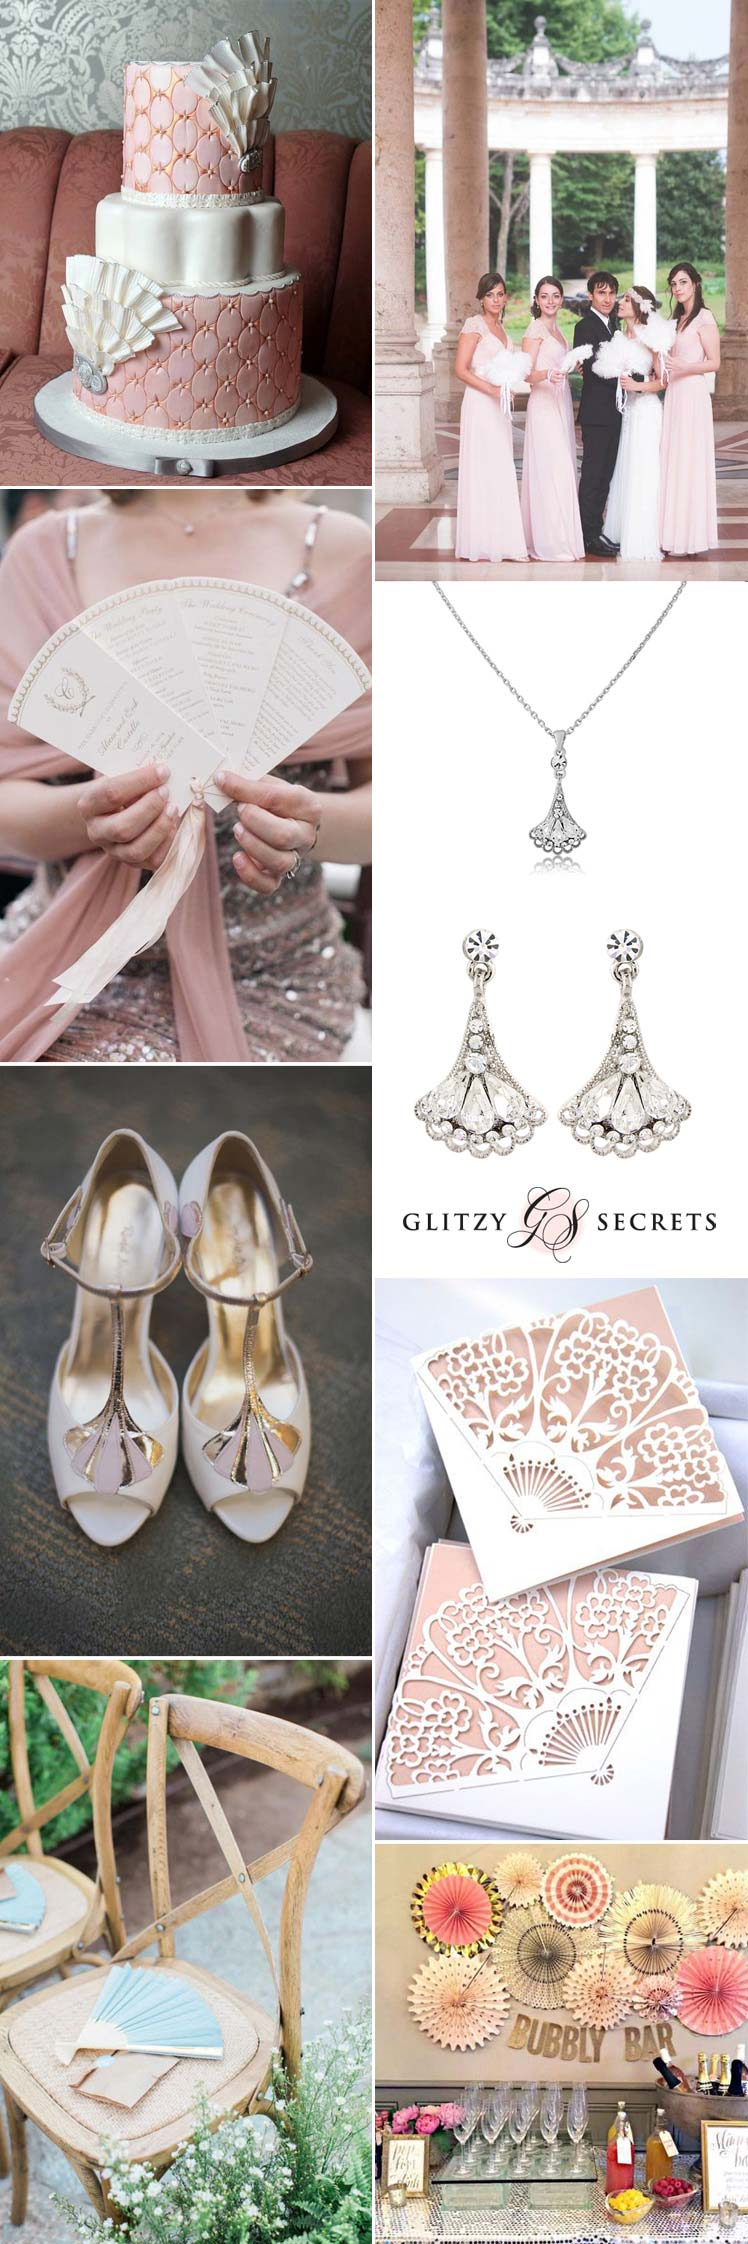 Amazing fan details for your wedding